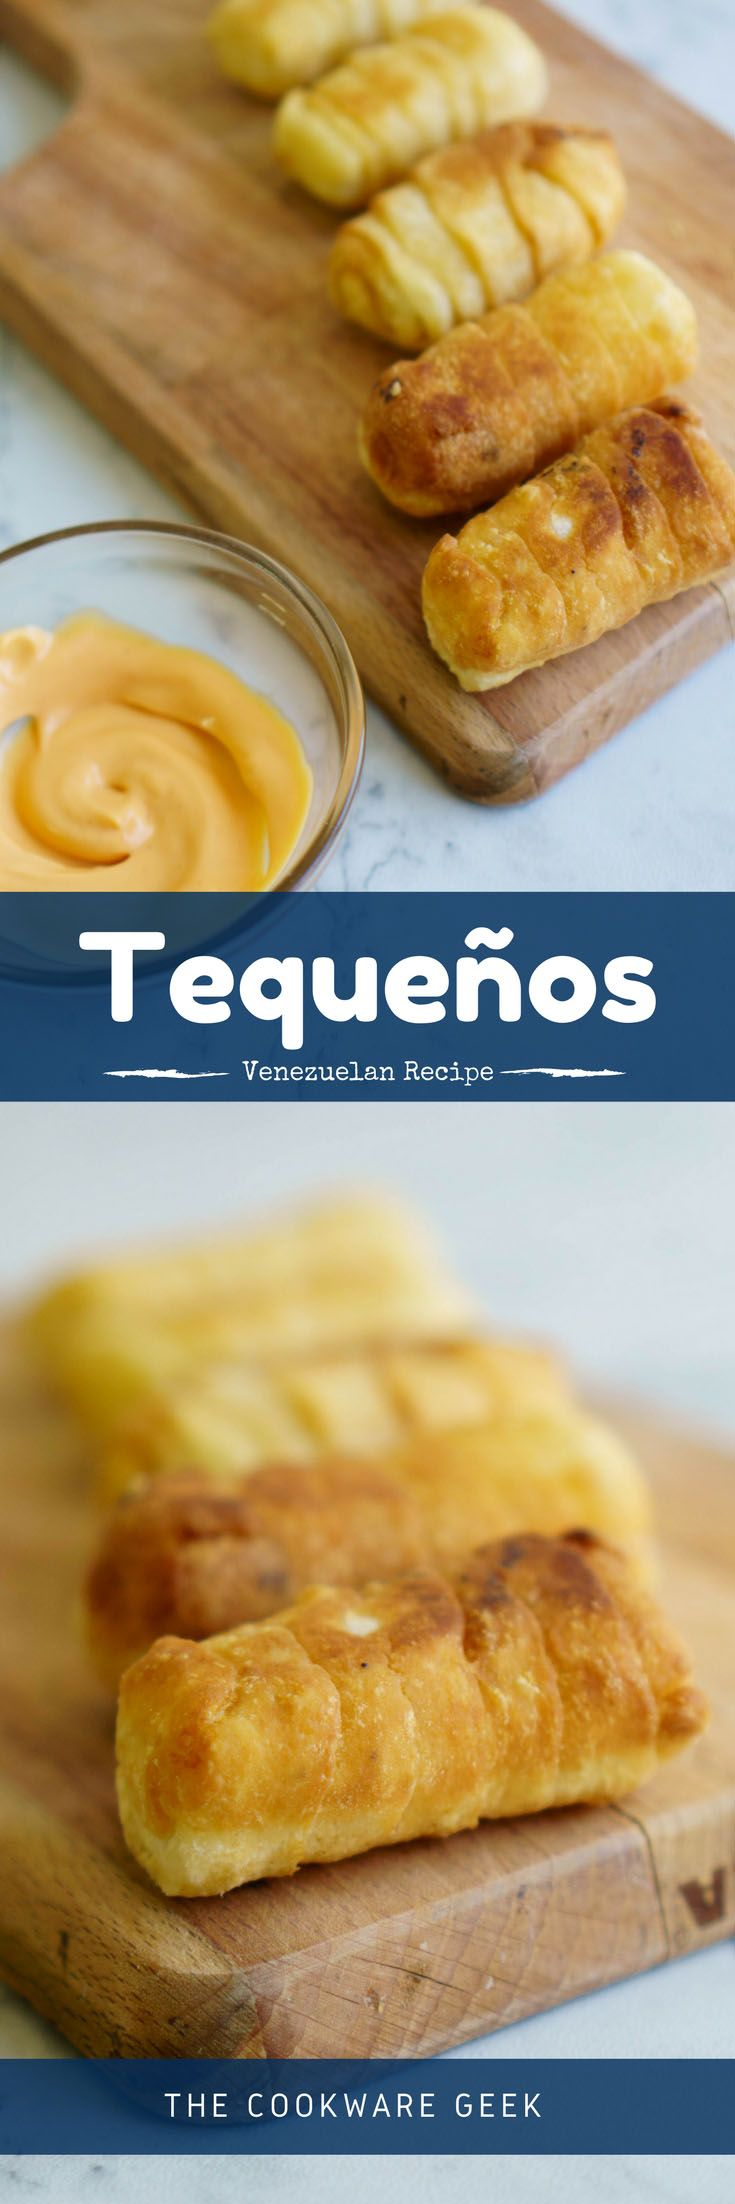 The most famous Venezuelan appetizer: Tequeños! Learn how to make tequeños with this simple recipe step by step (+ instructional video)